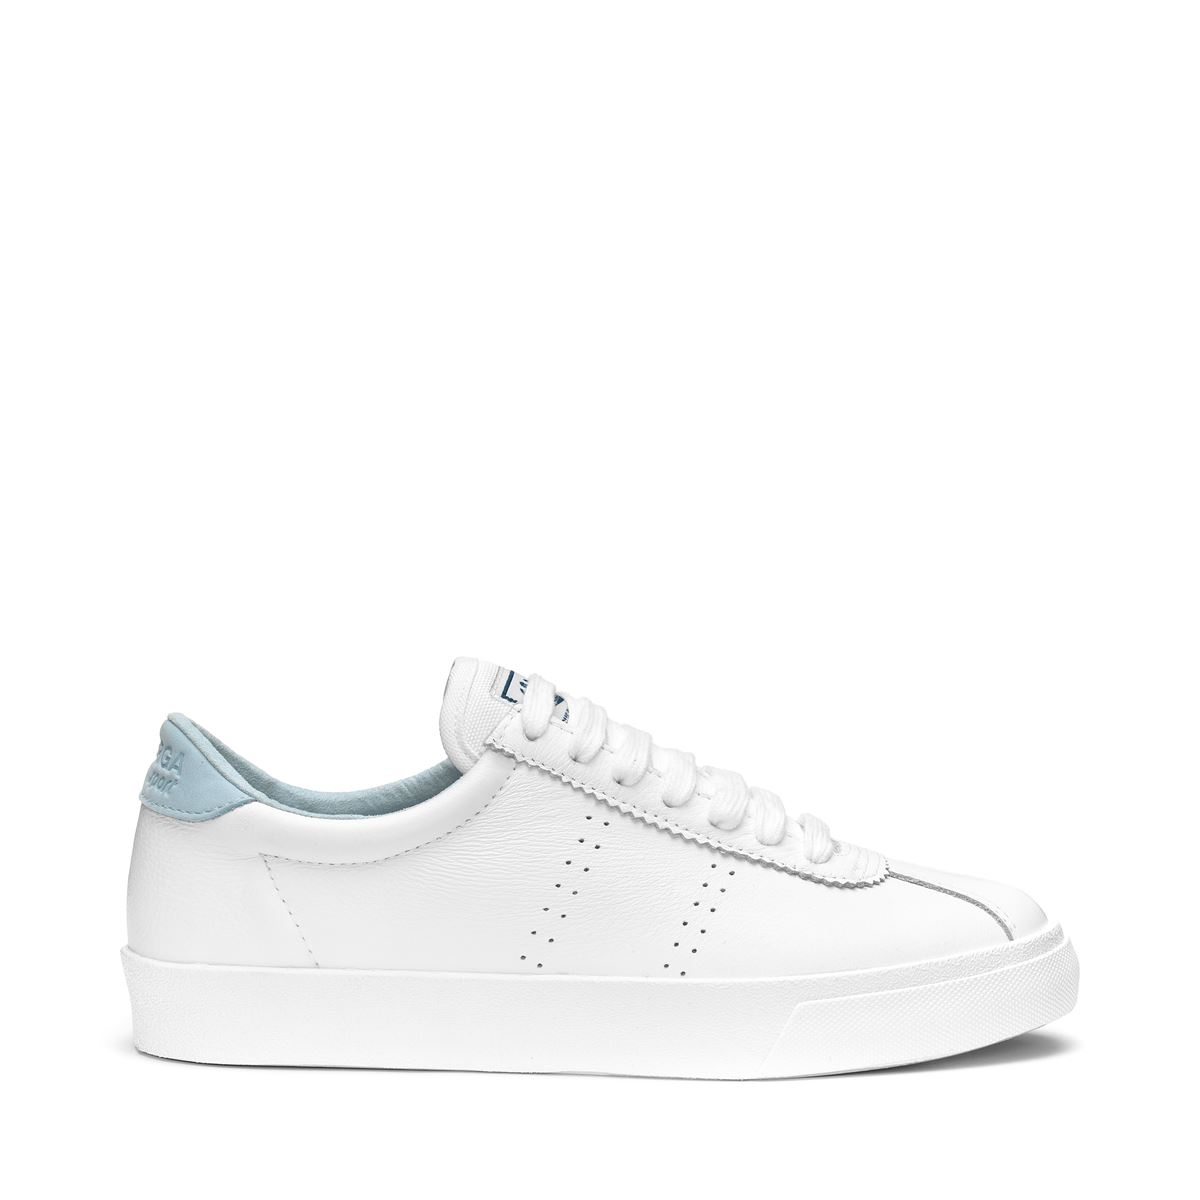 Italian Sneakers Superga for men and women-S00CKL0